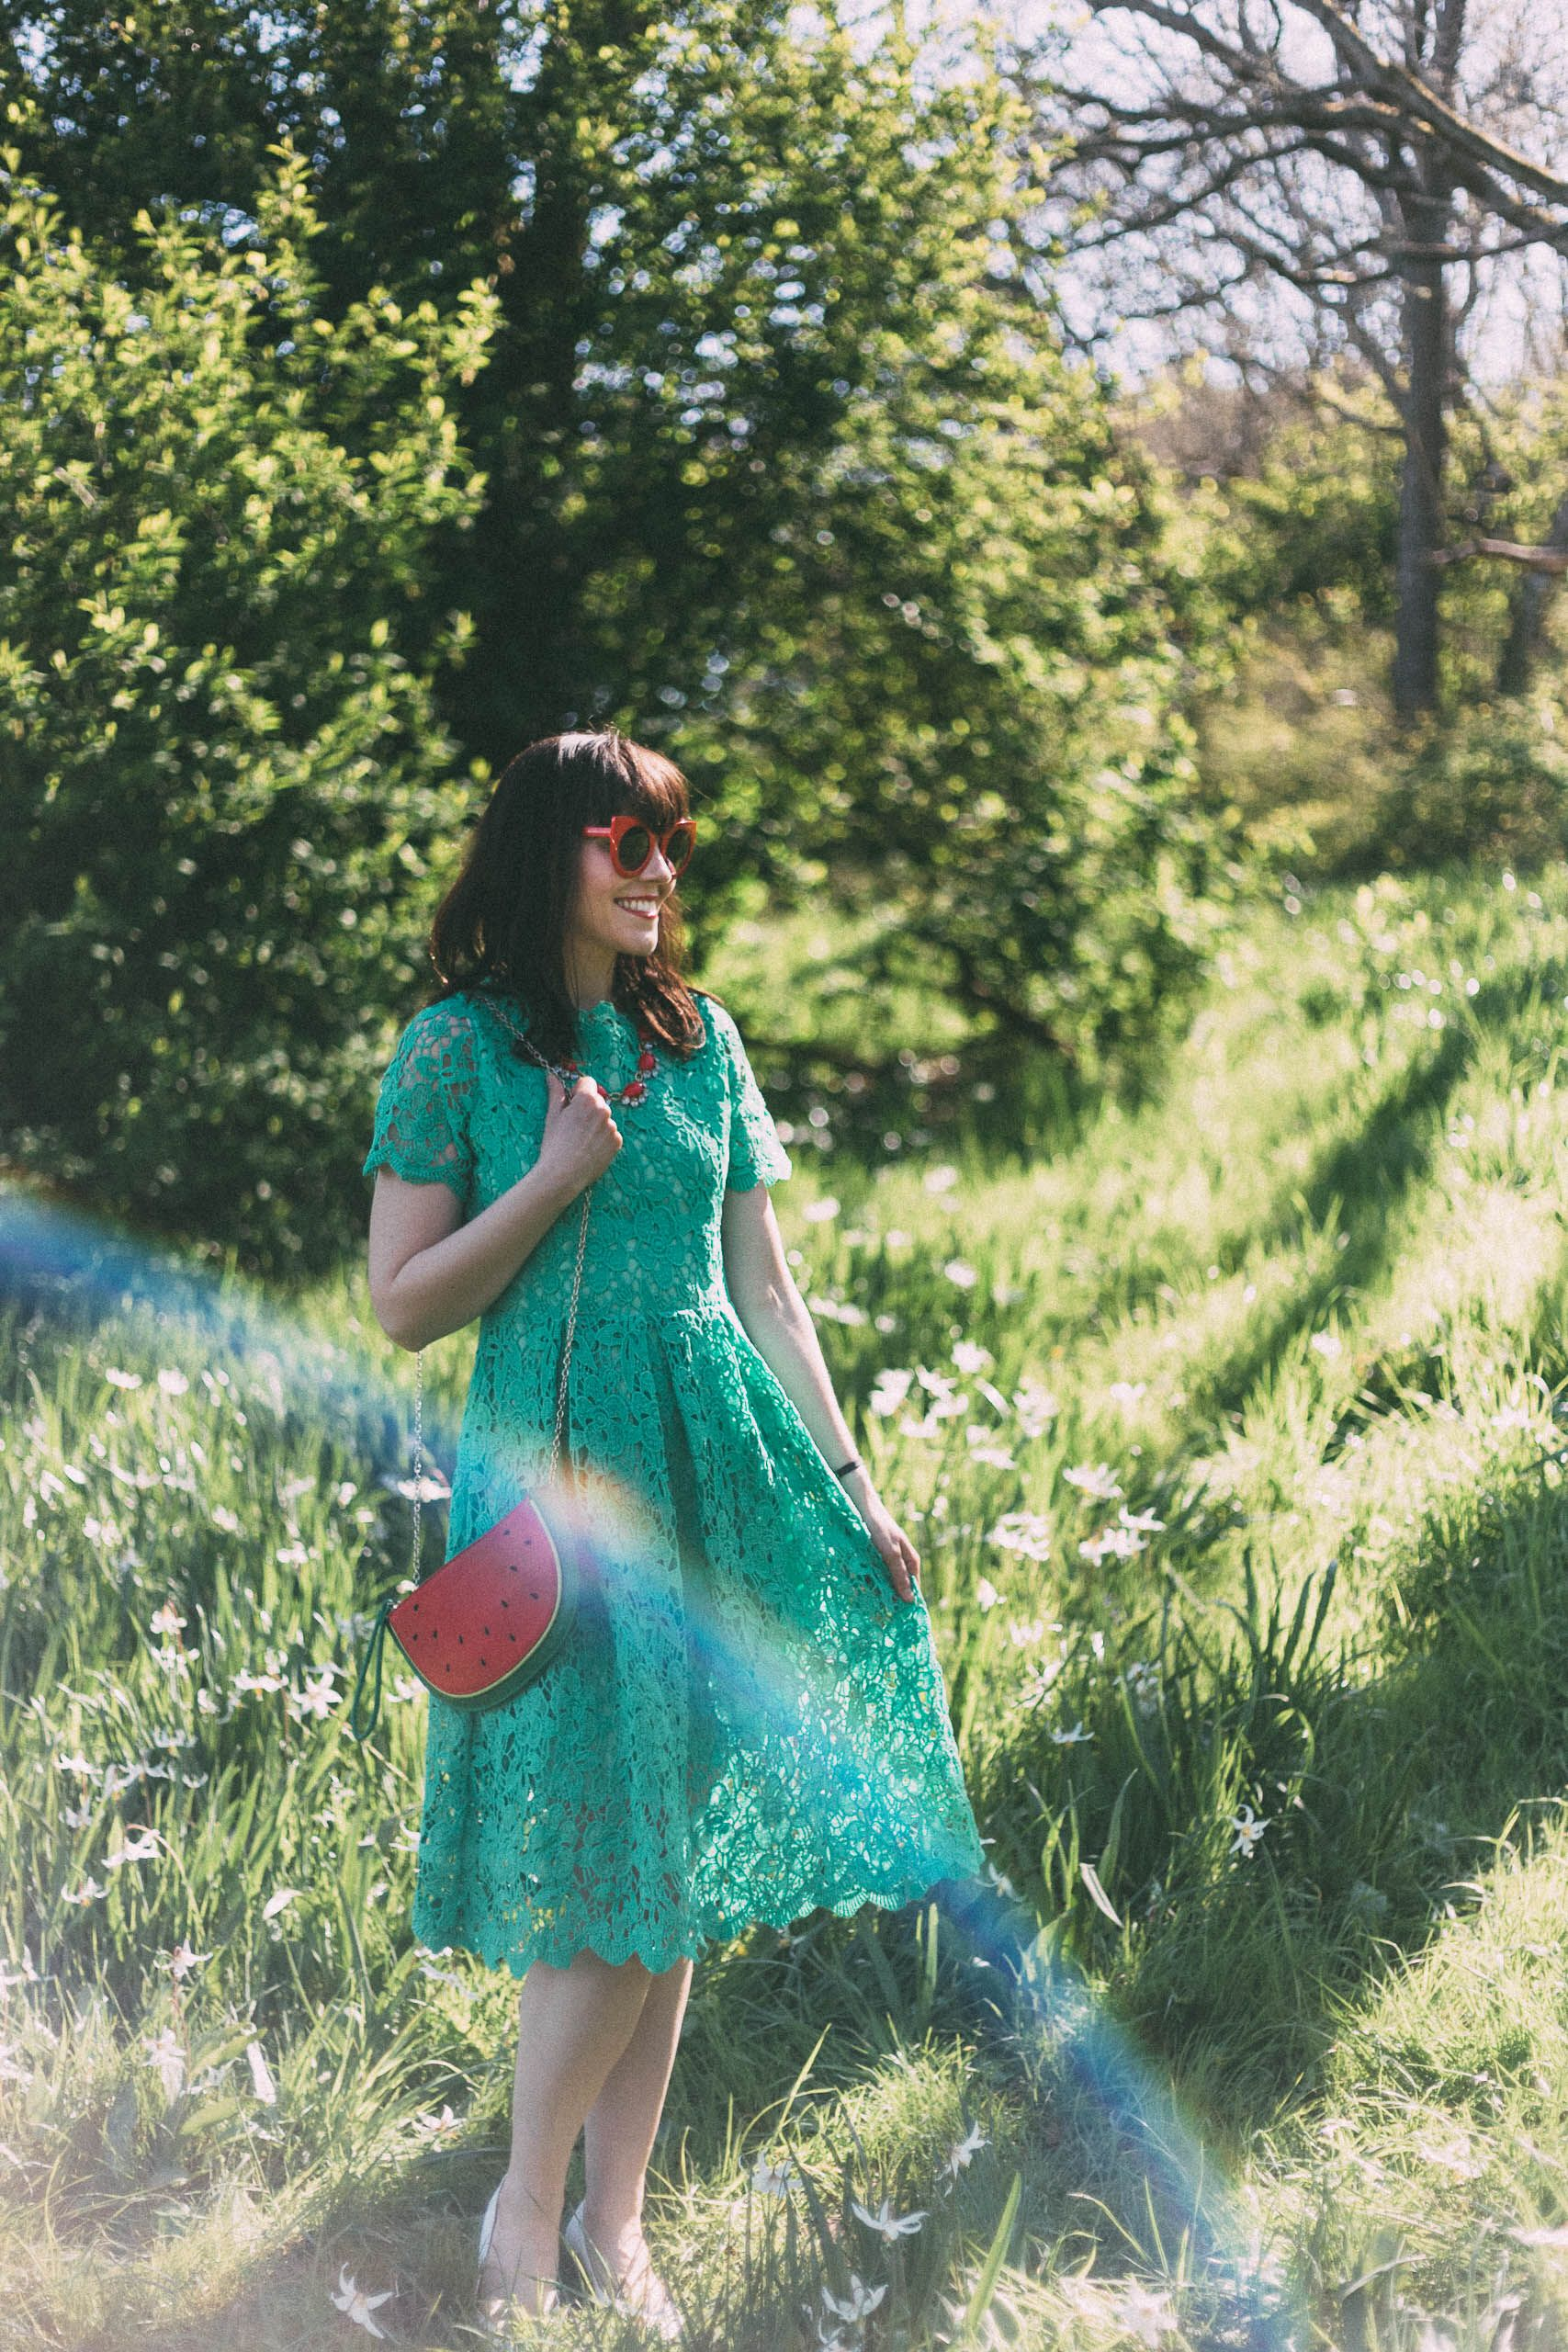 Floral Holiday Crochet Dress in Green, Watermelon bag, Chic Wish ...